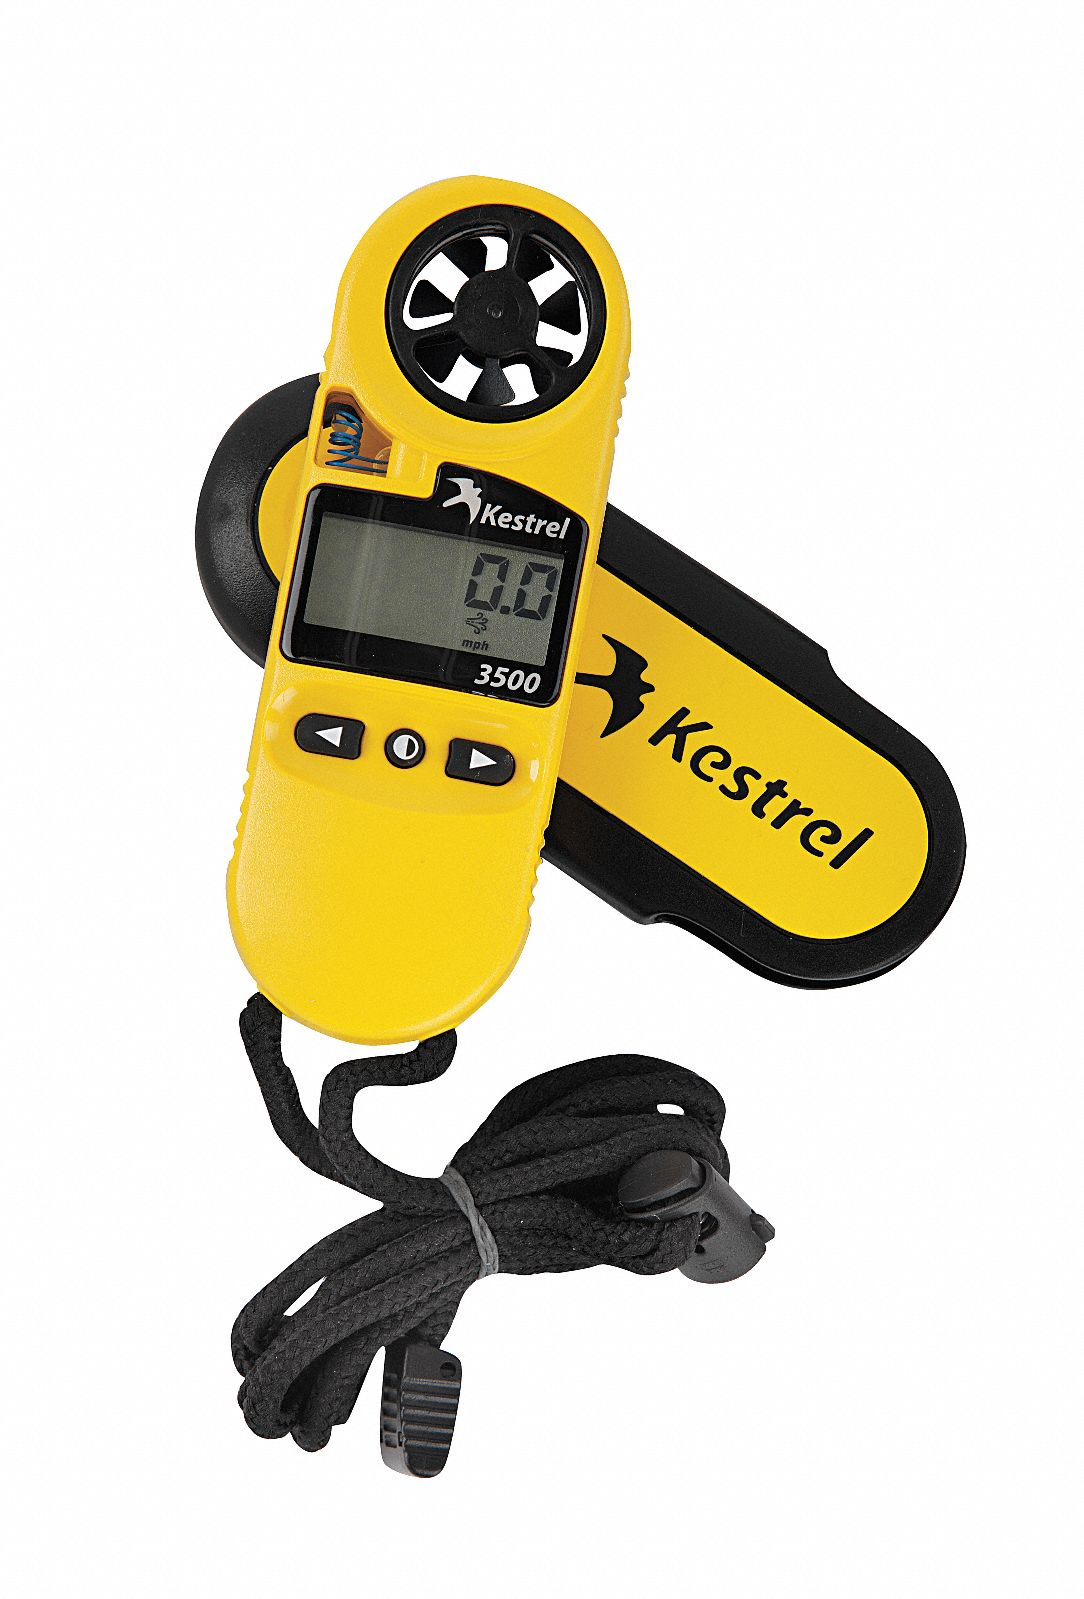 Anemometer,  Rotating Vane,  No,  Yes,  118 to 7874 Velocity (FPM),  0.6 to 40 Velocity (MPS)